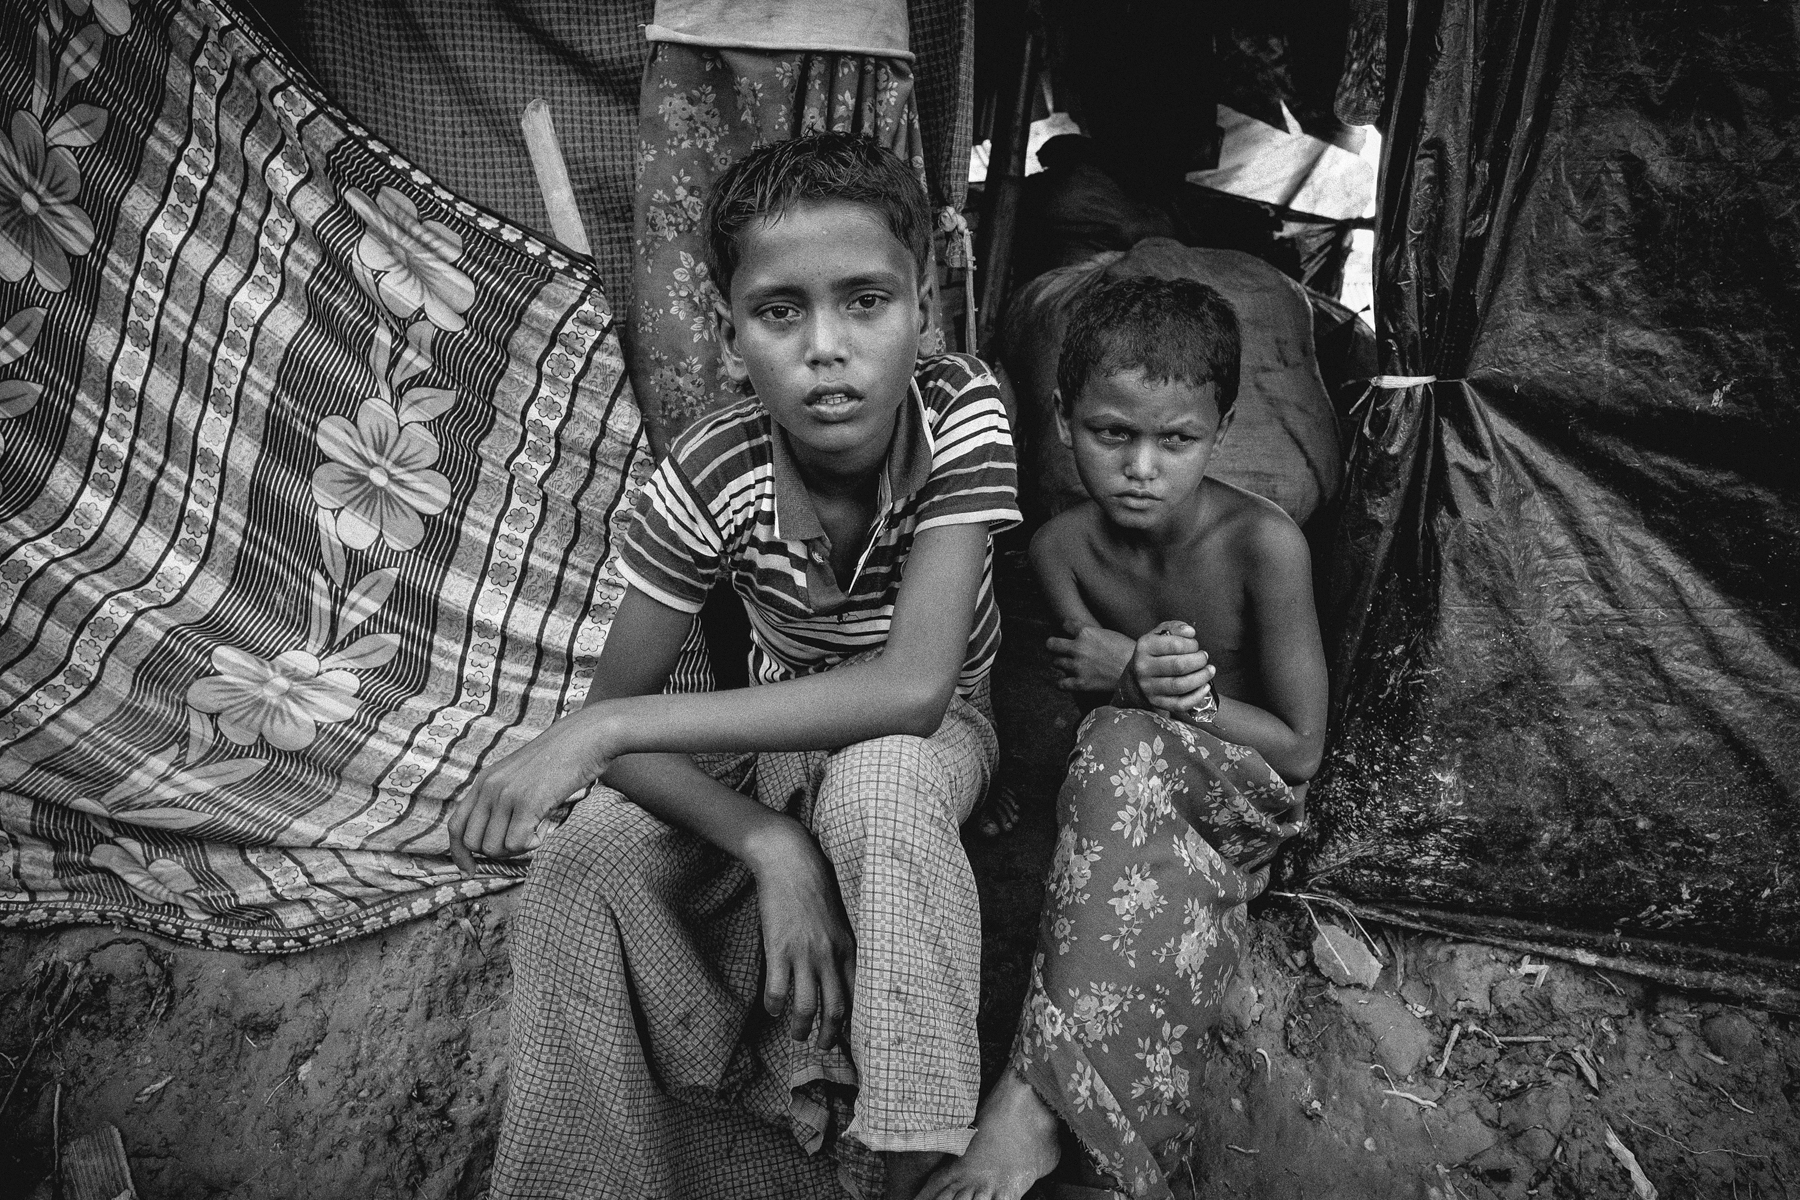 Kamal and his sister Anuwara witnessed the murder of both of their parents when the Myanmar military shot them outside of their house in Maungdaw, Myanmar.  They now currently reside with other Rohingyas in Balukhali makeshift refugee camp in Bangladesh.